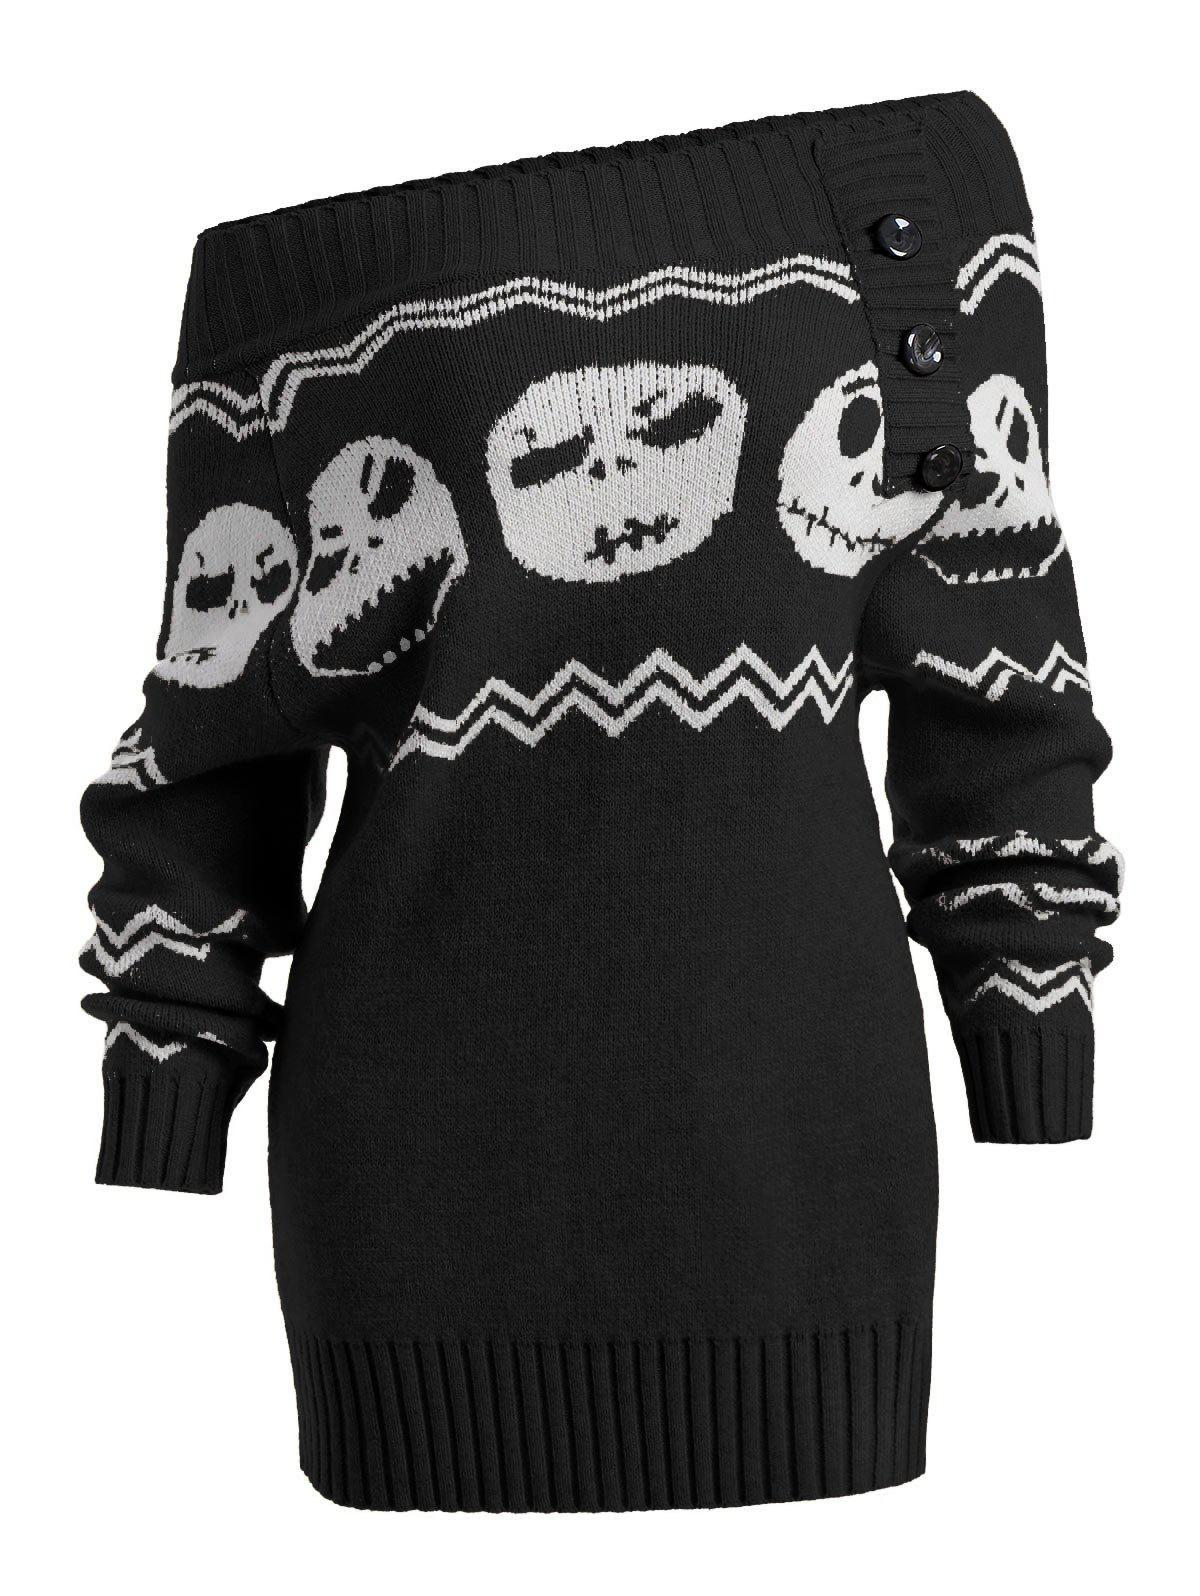 Skull Off Shoulder Tunic SweaterWOMEN<br><br>Size: 2XL; Color: BLACK; Type: Pullovers; Material: Acrylic; Sleeve Length: Full; Collar: Off The Shoulder; Style: Fashion; Pattern Type: Skulls; Season: Fall,Spring,Winter; Elasticity: Elastic; Weight: 0.4900kg; Package Contents: 1 x Sweater;